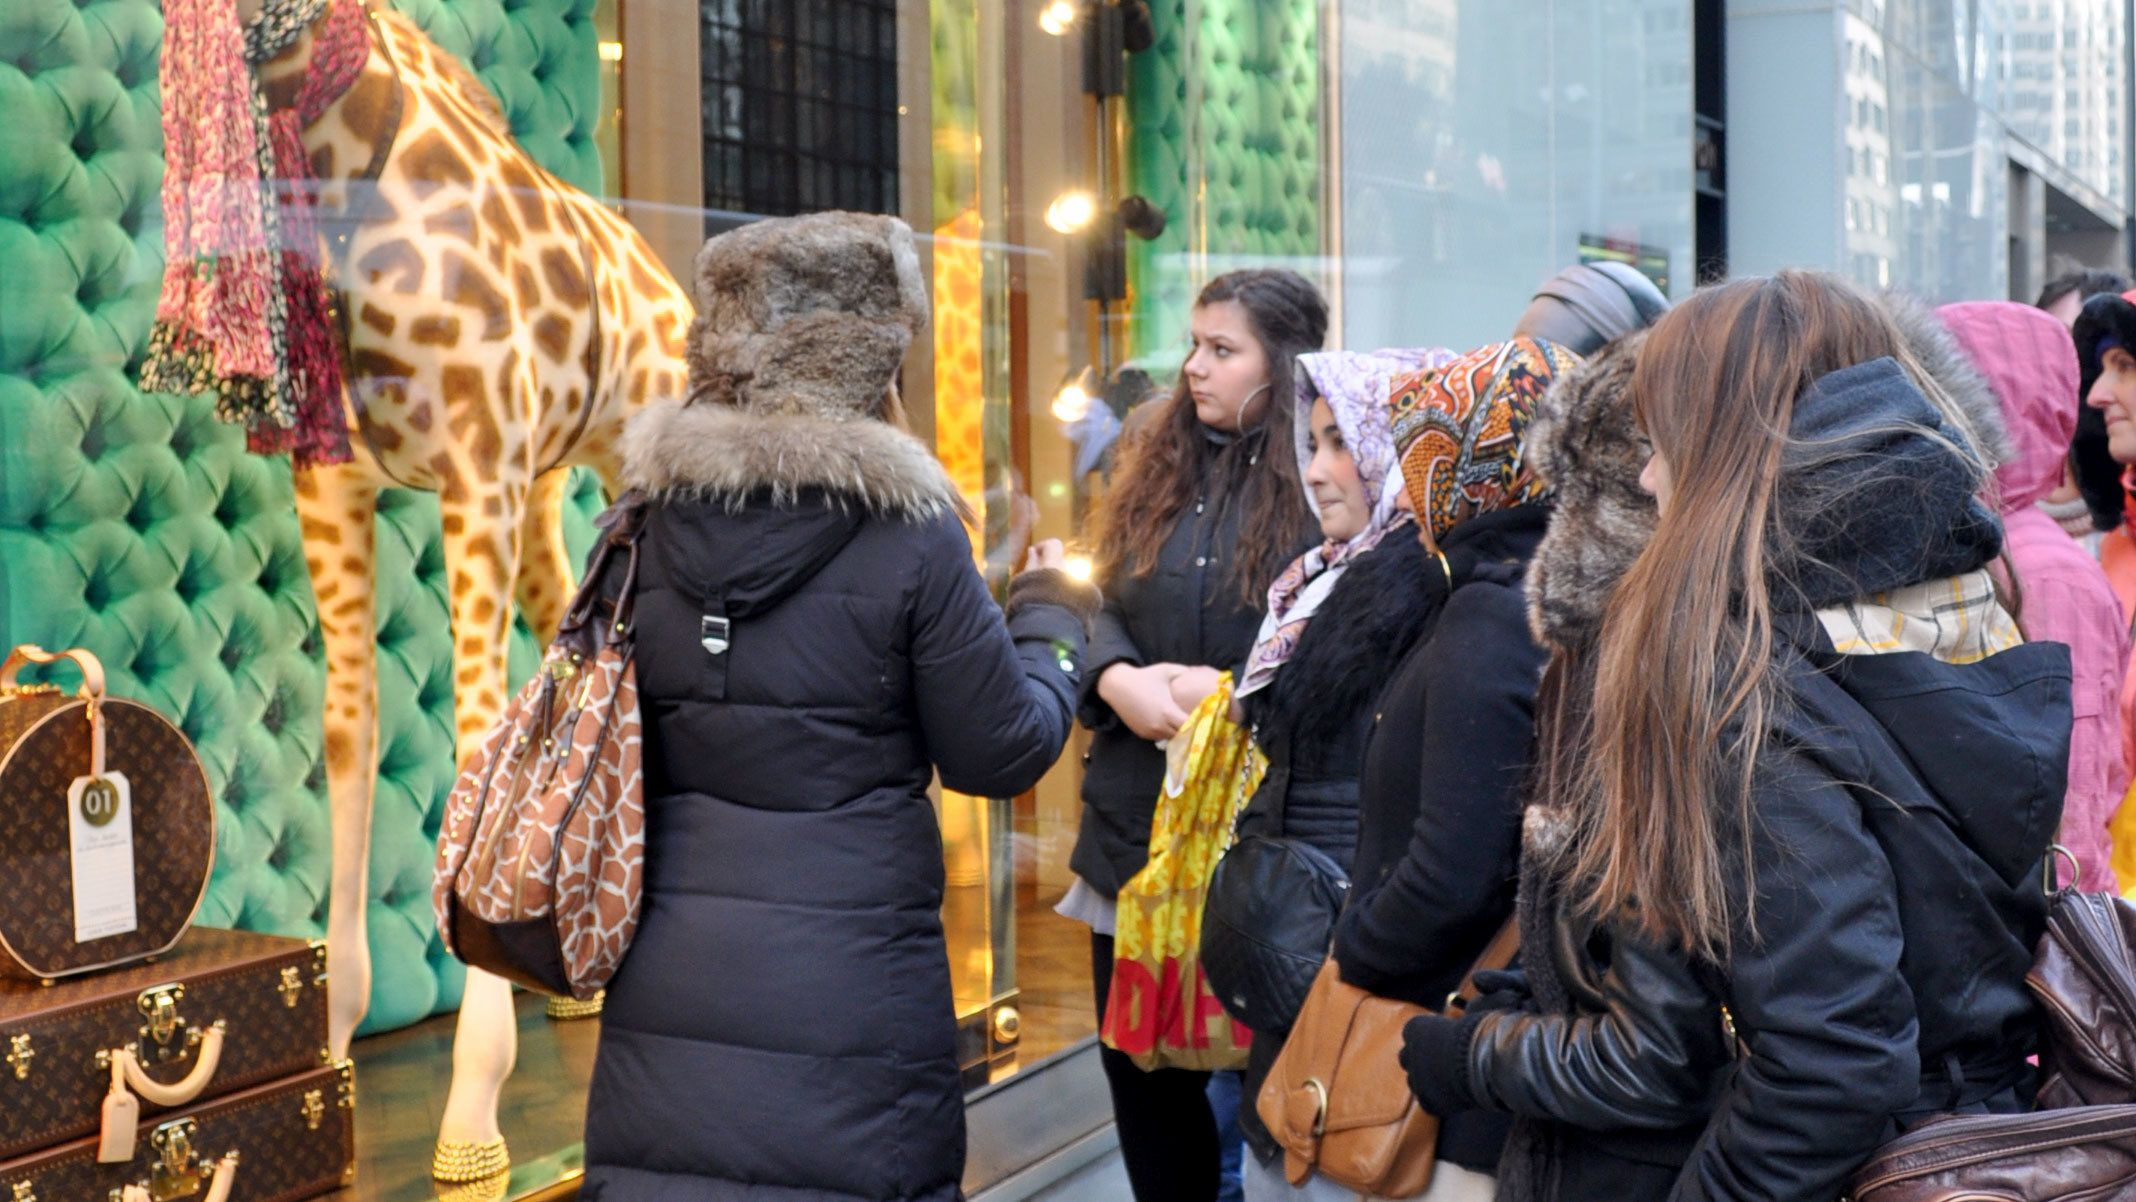 Tour group outside a Fifth Avenue storefront in New York